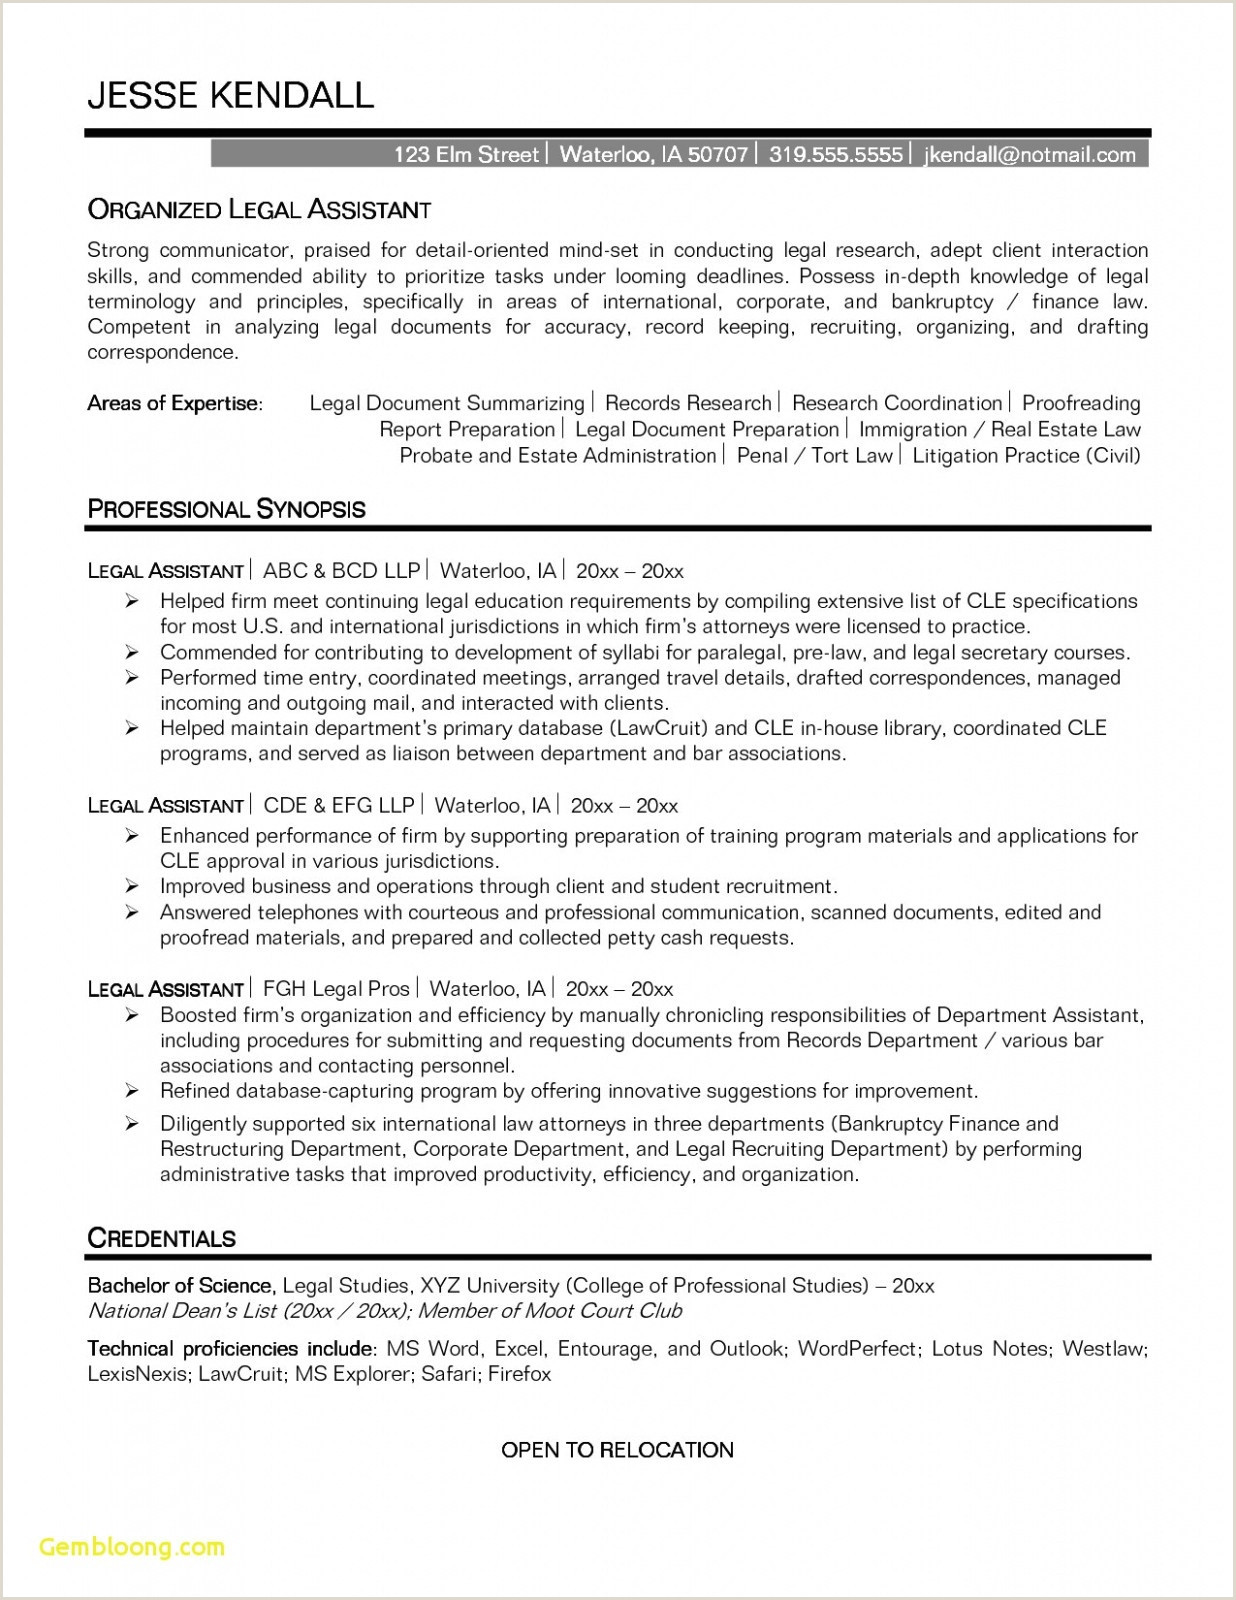 Download Professional Resume Template – Salumguilher